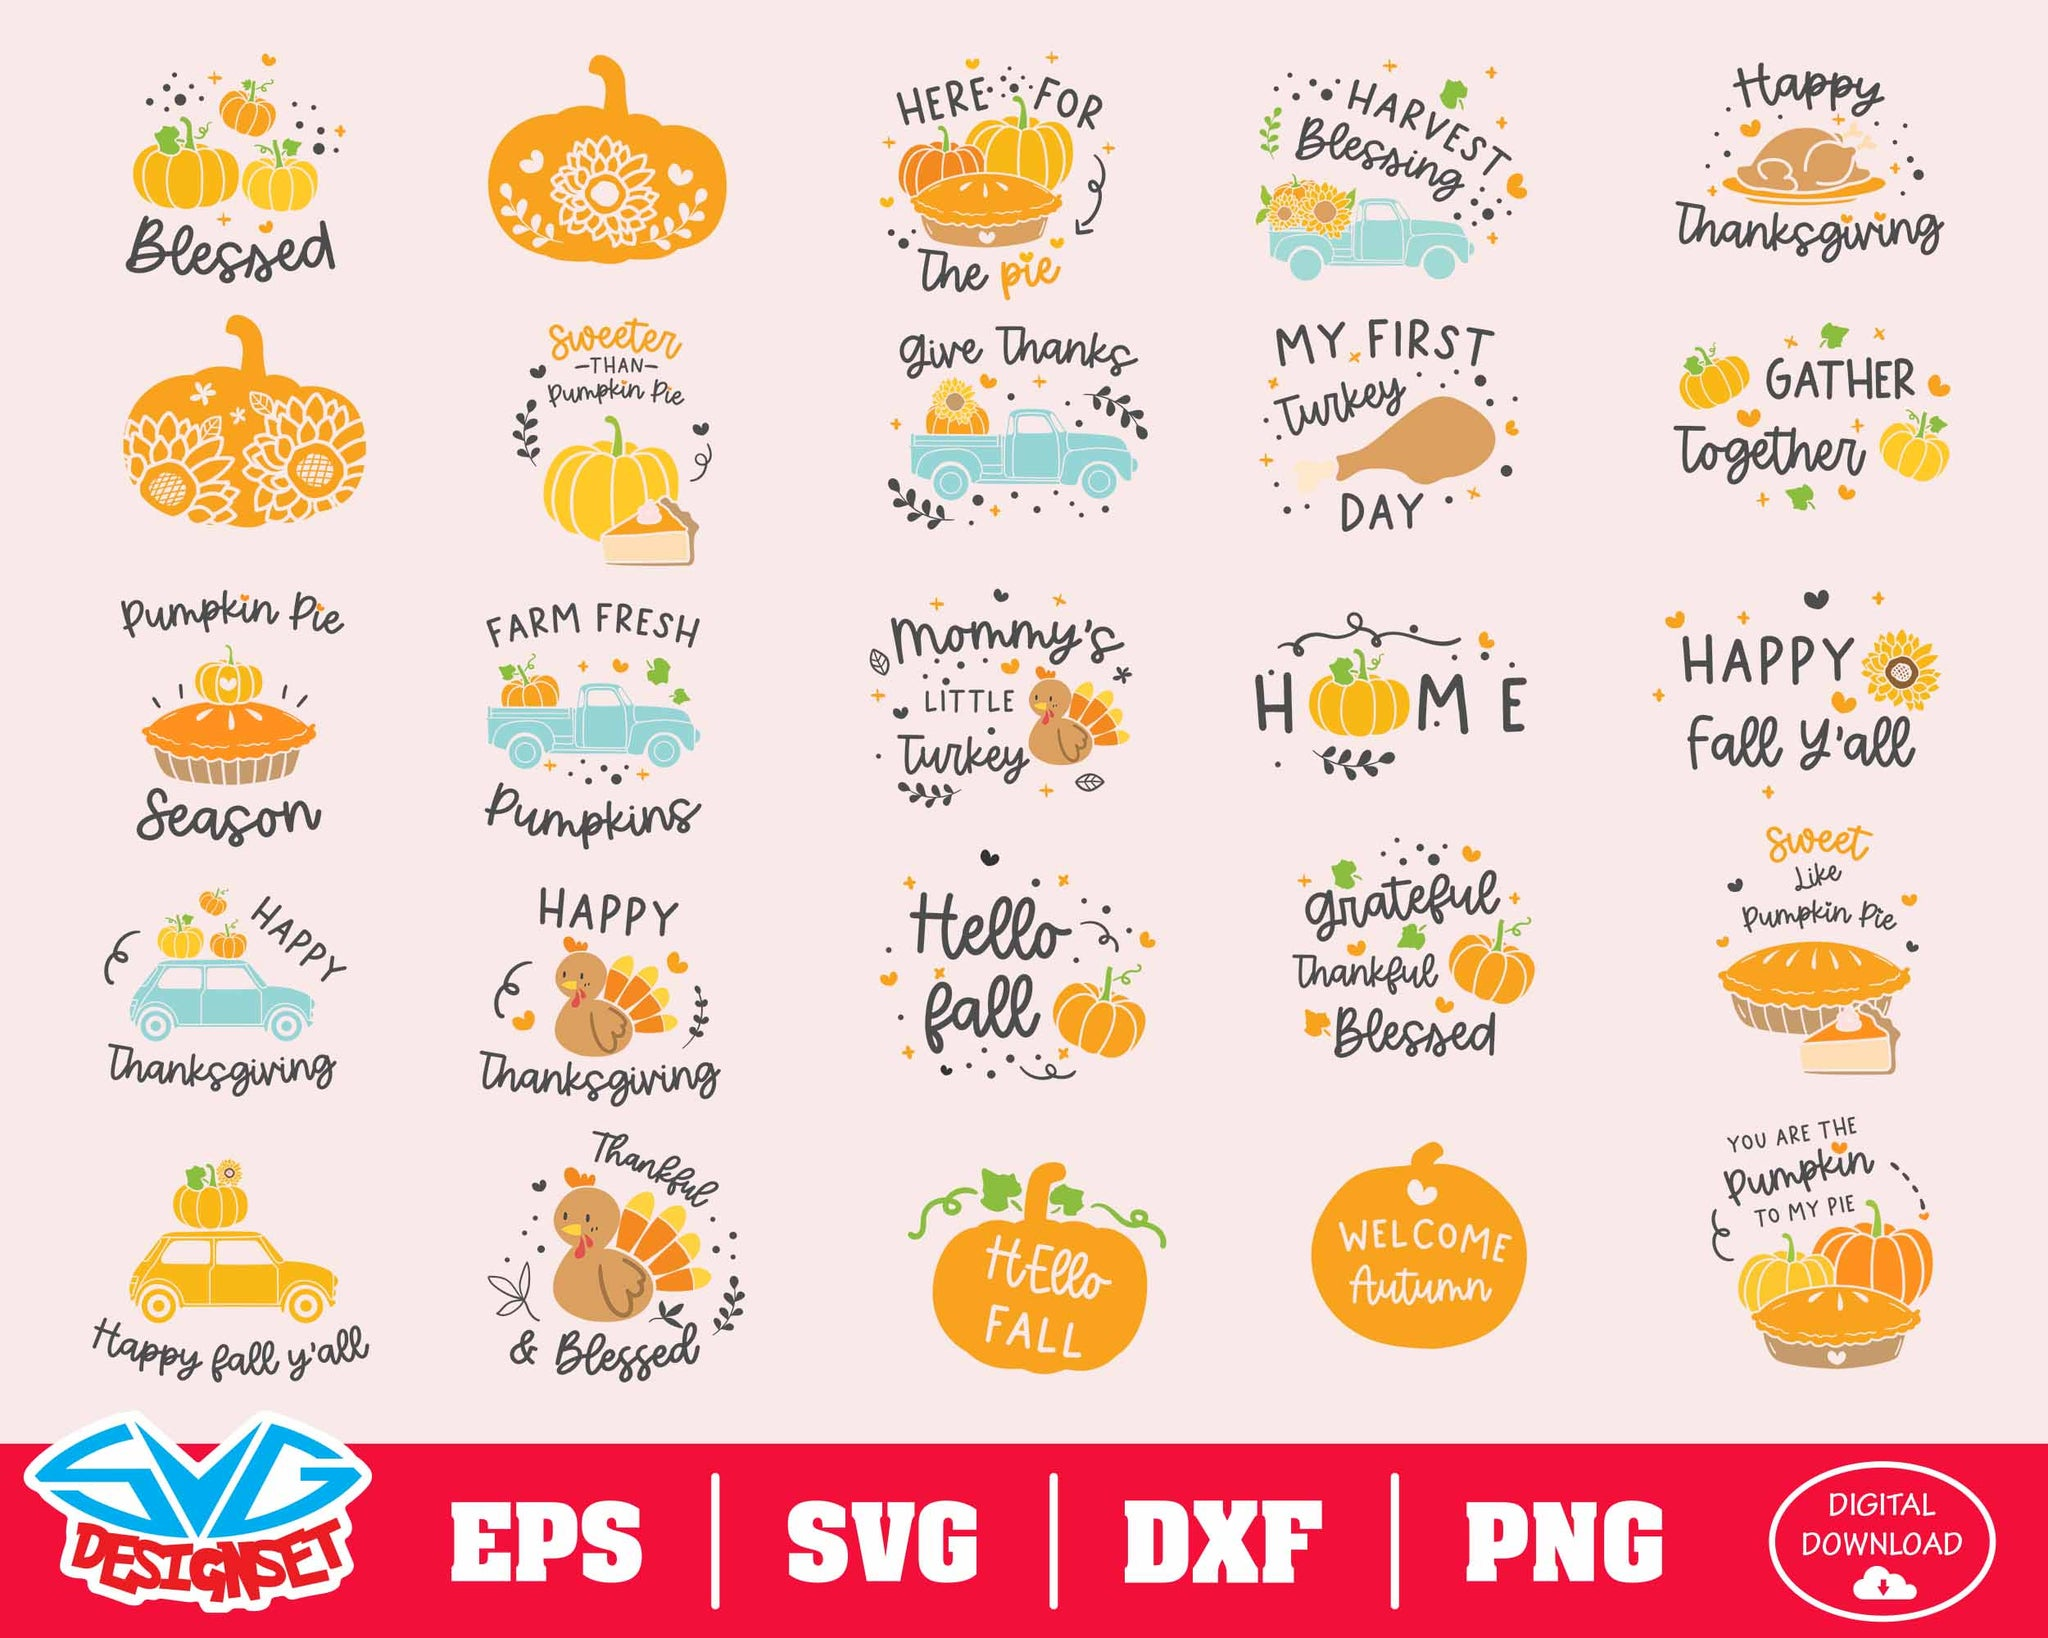 Thanksgiving Svg, Dxf, Eps, Png, Clipart, Silhouette and Cutfiles #2